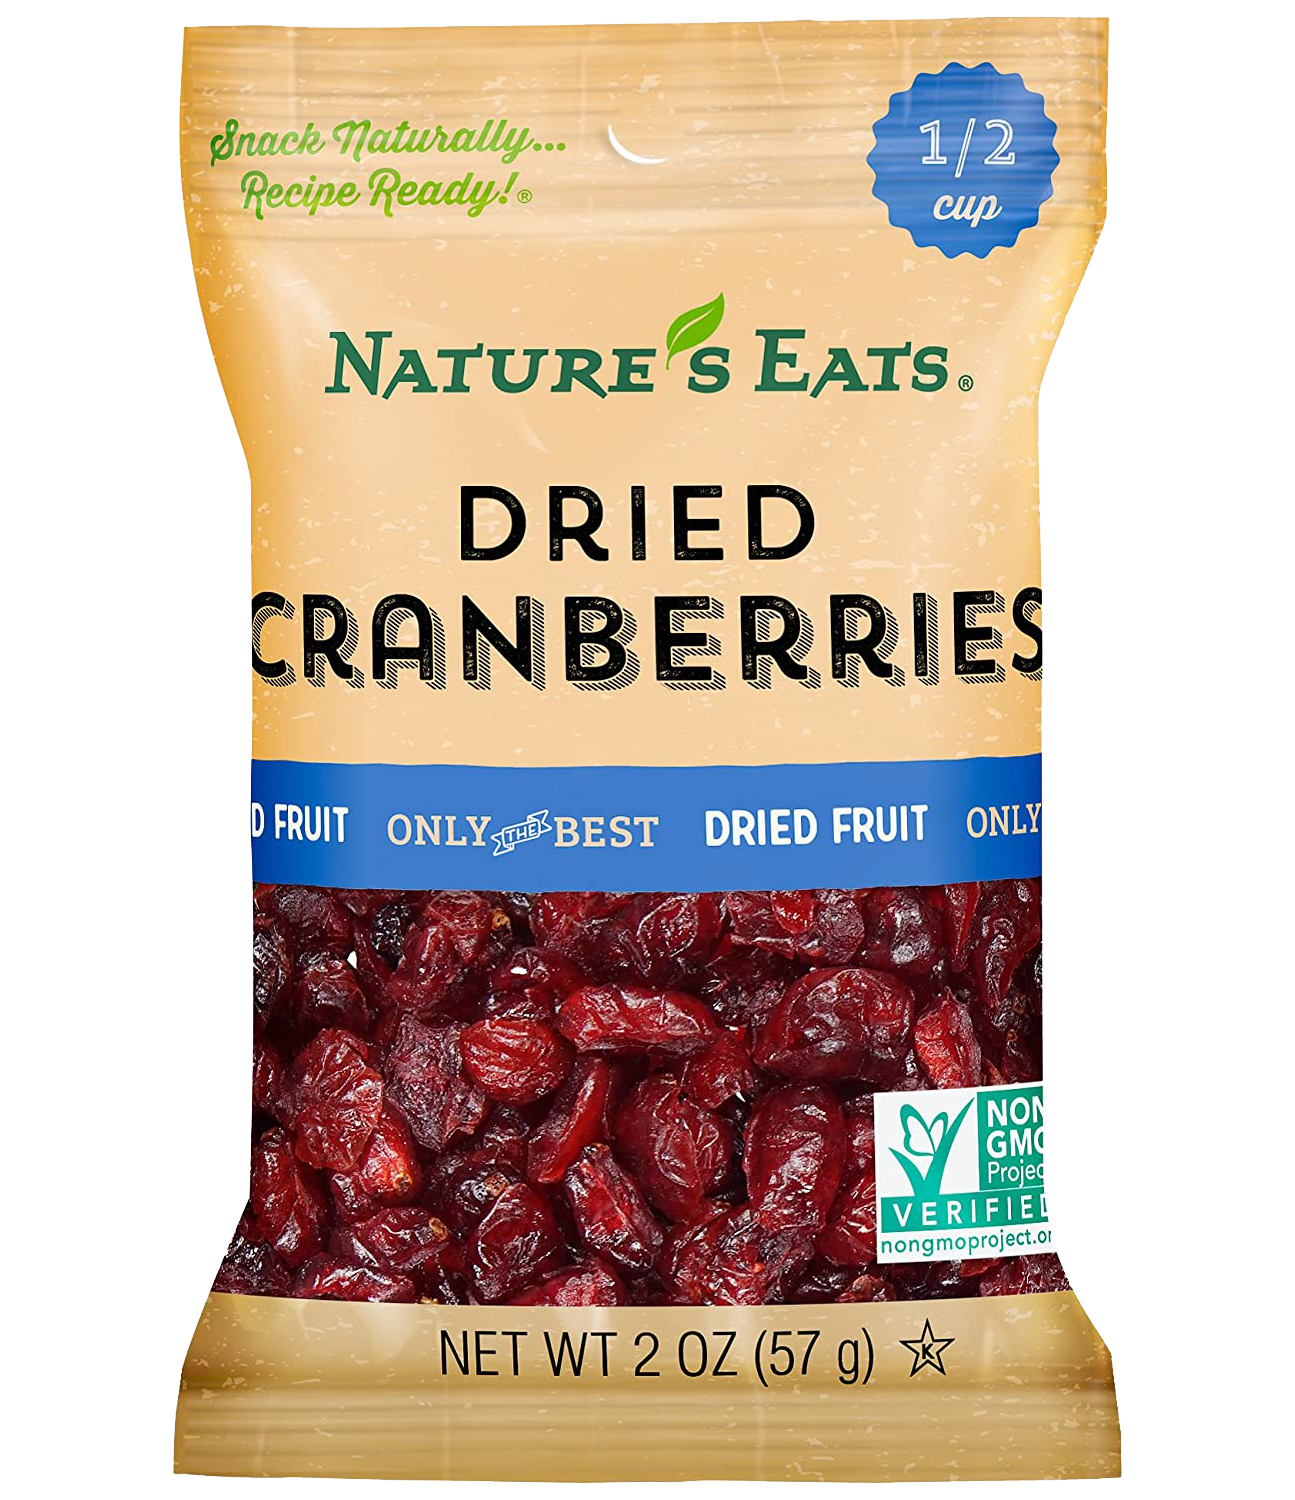 NaturesEats_DriedCranberries